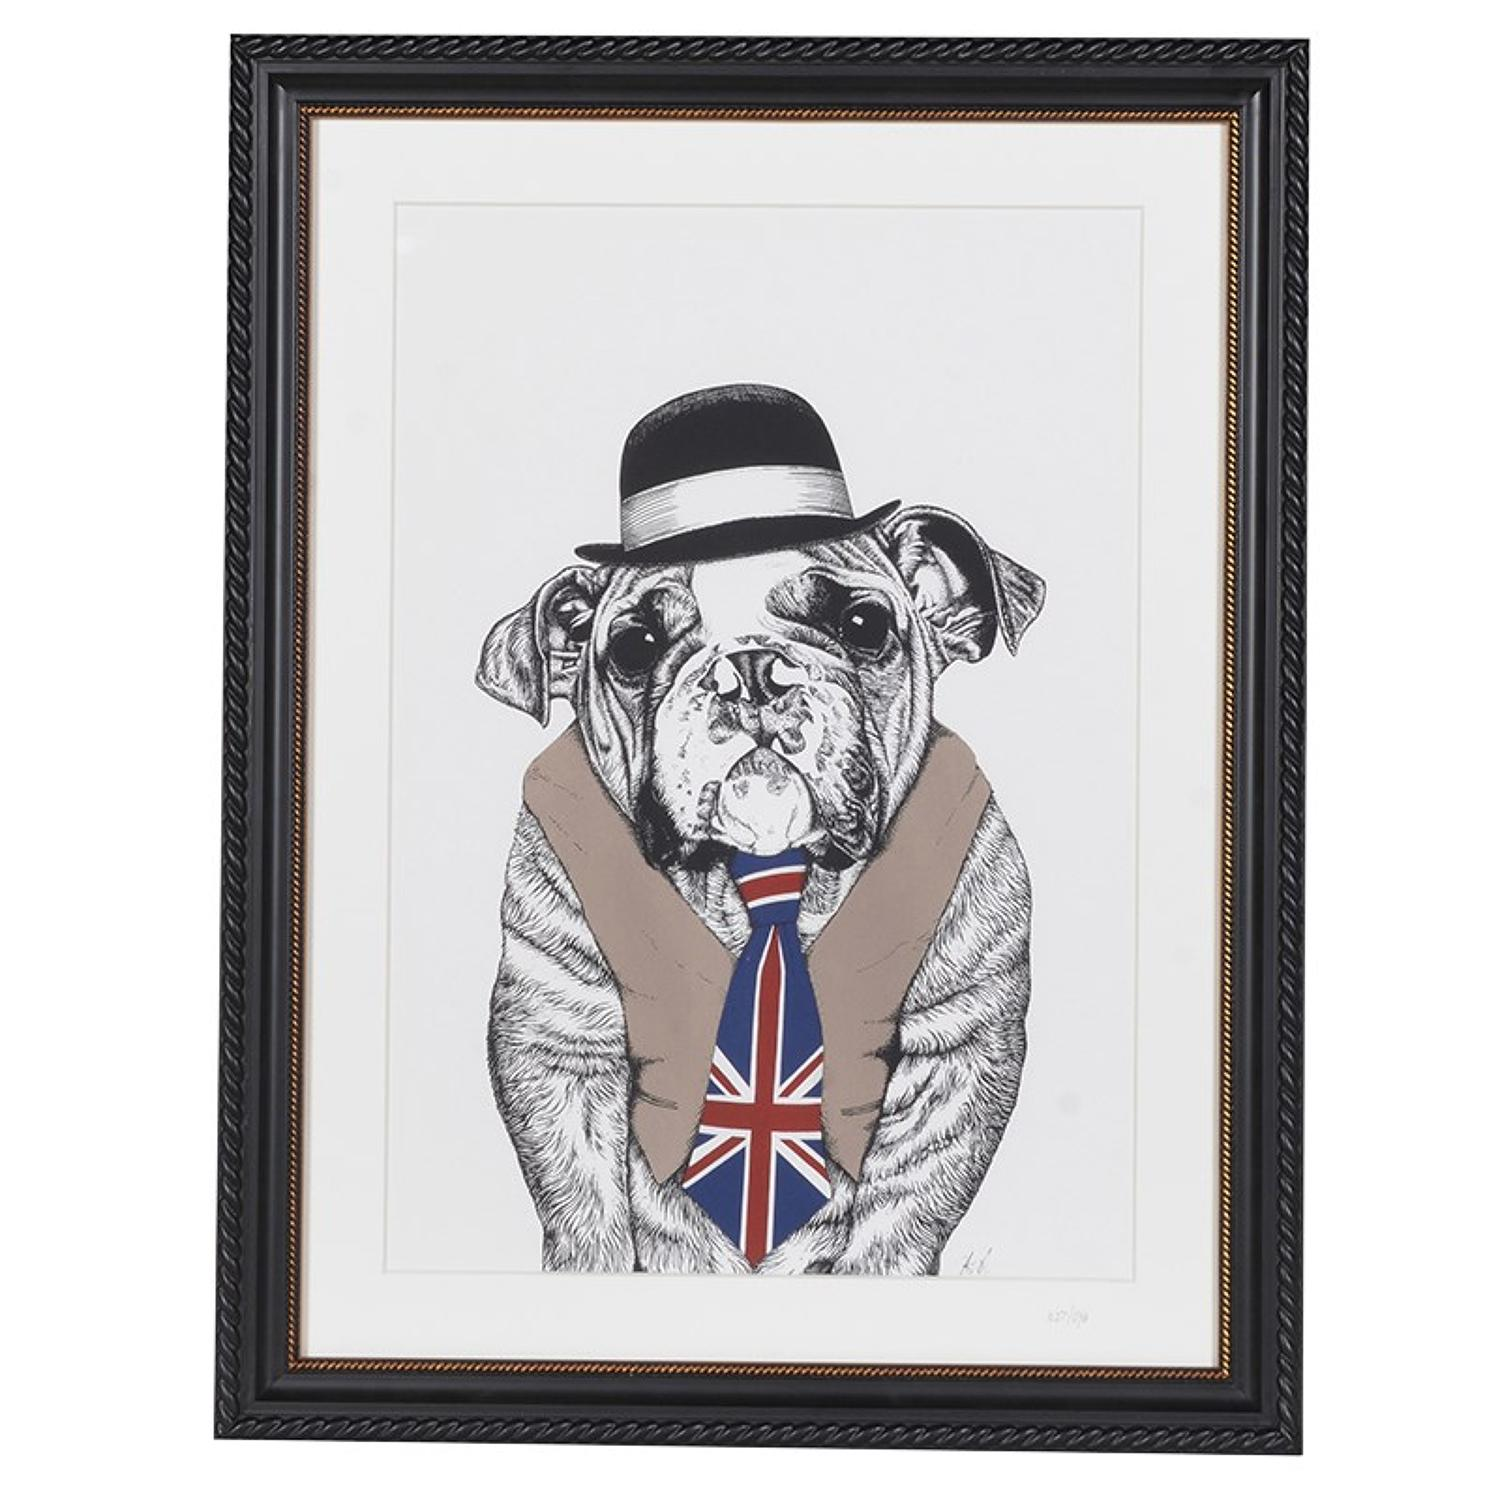 Quirky British bulldog print